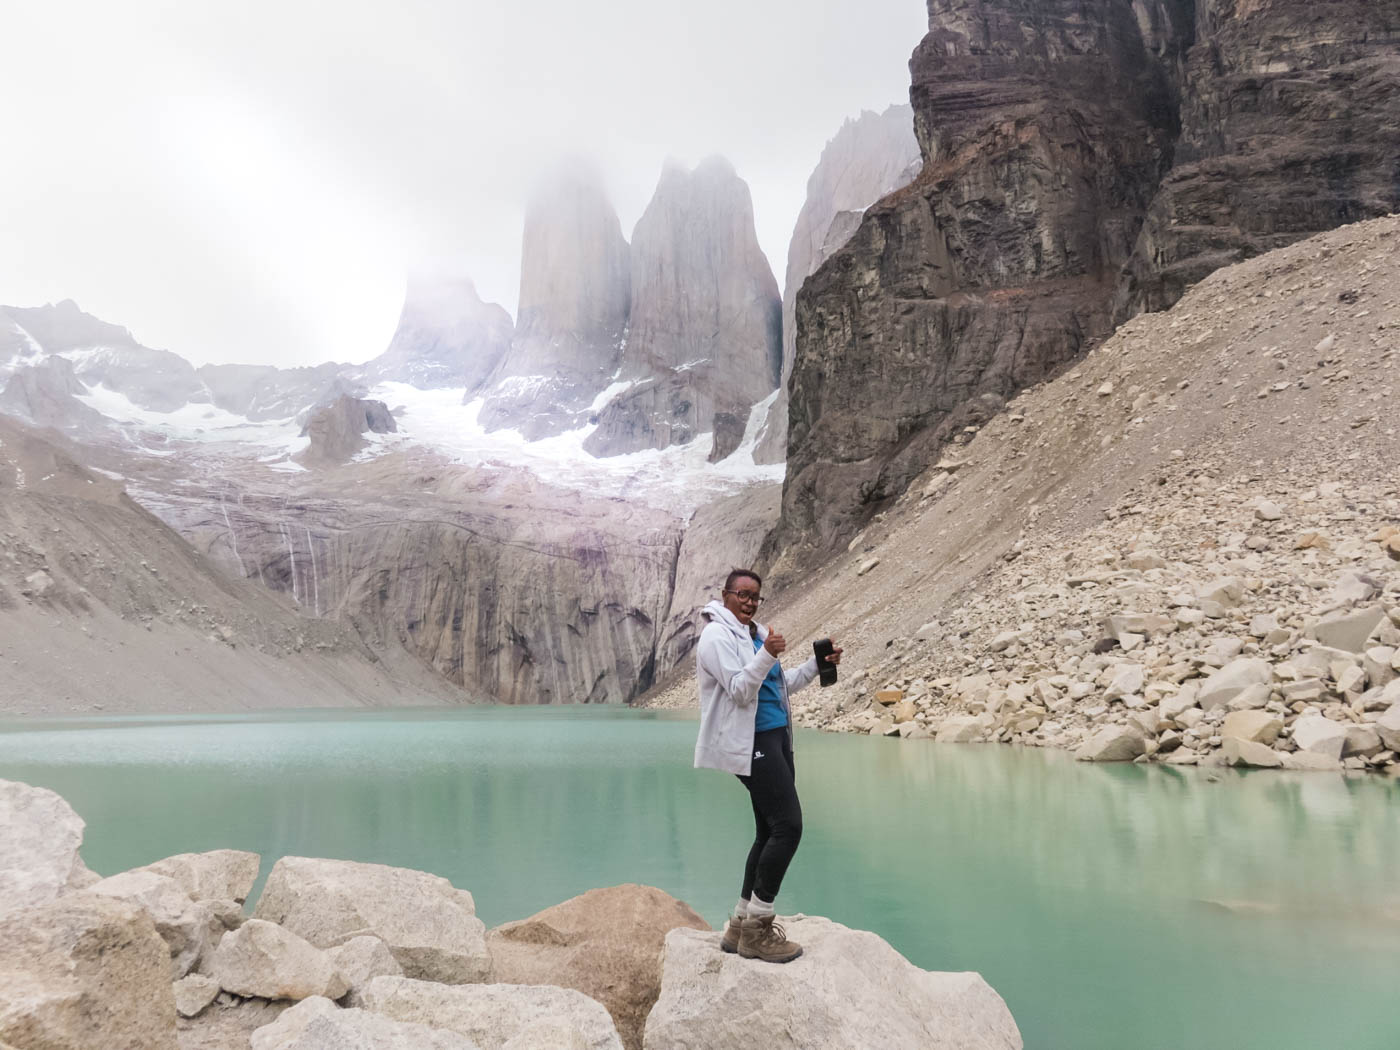 Julianna Barnaby at the Torres del Paine